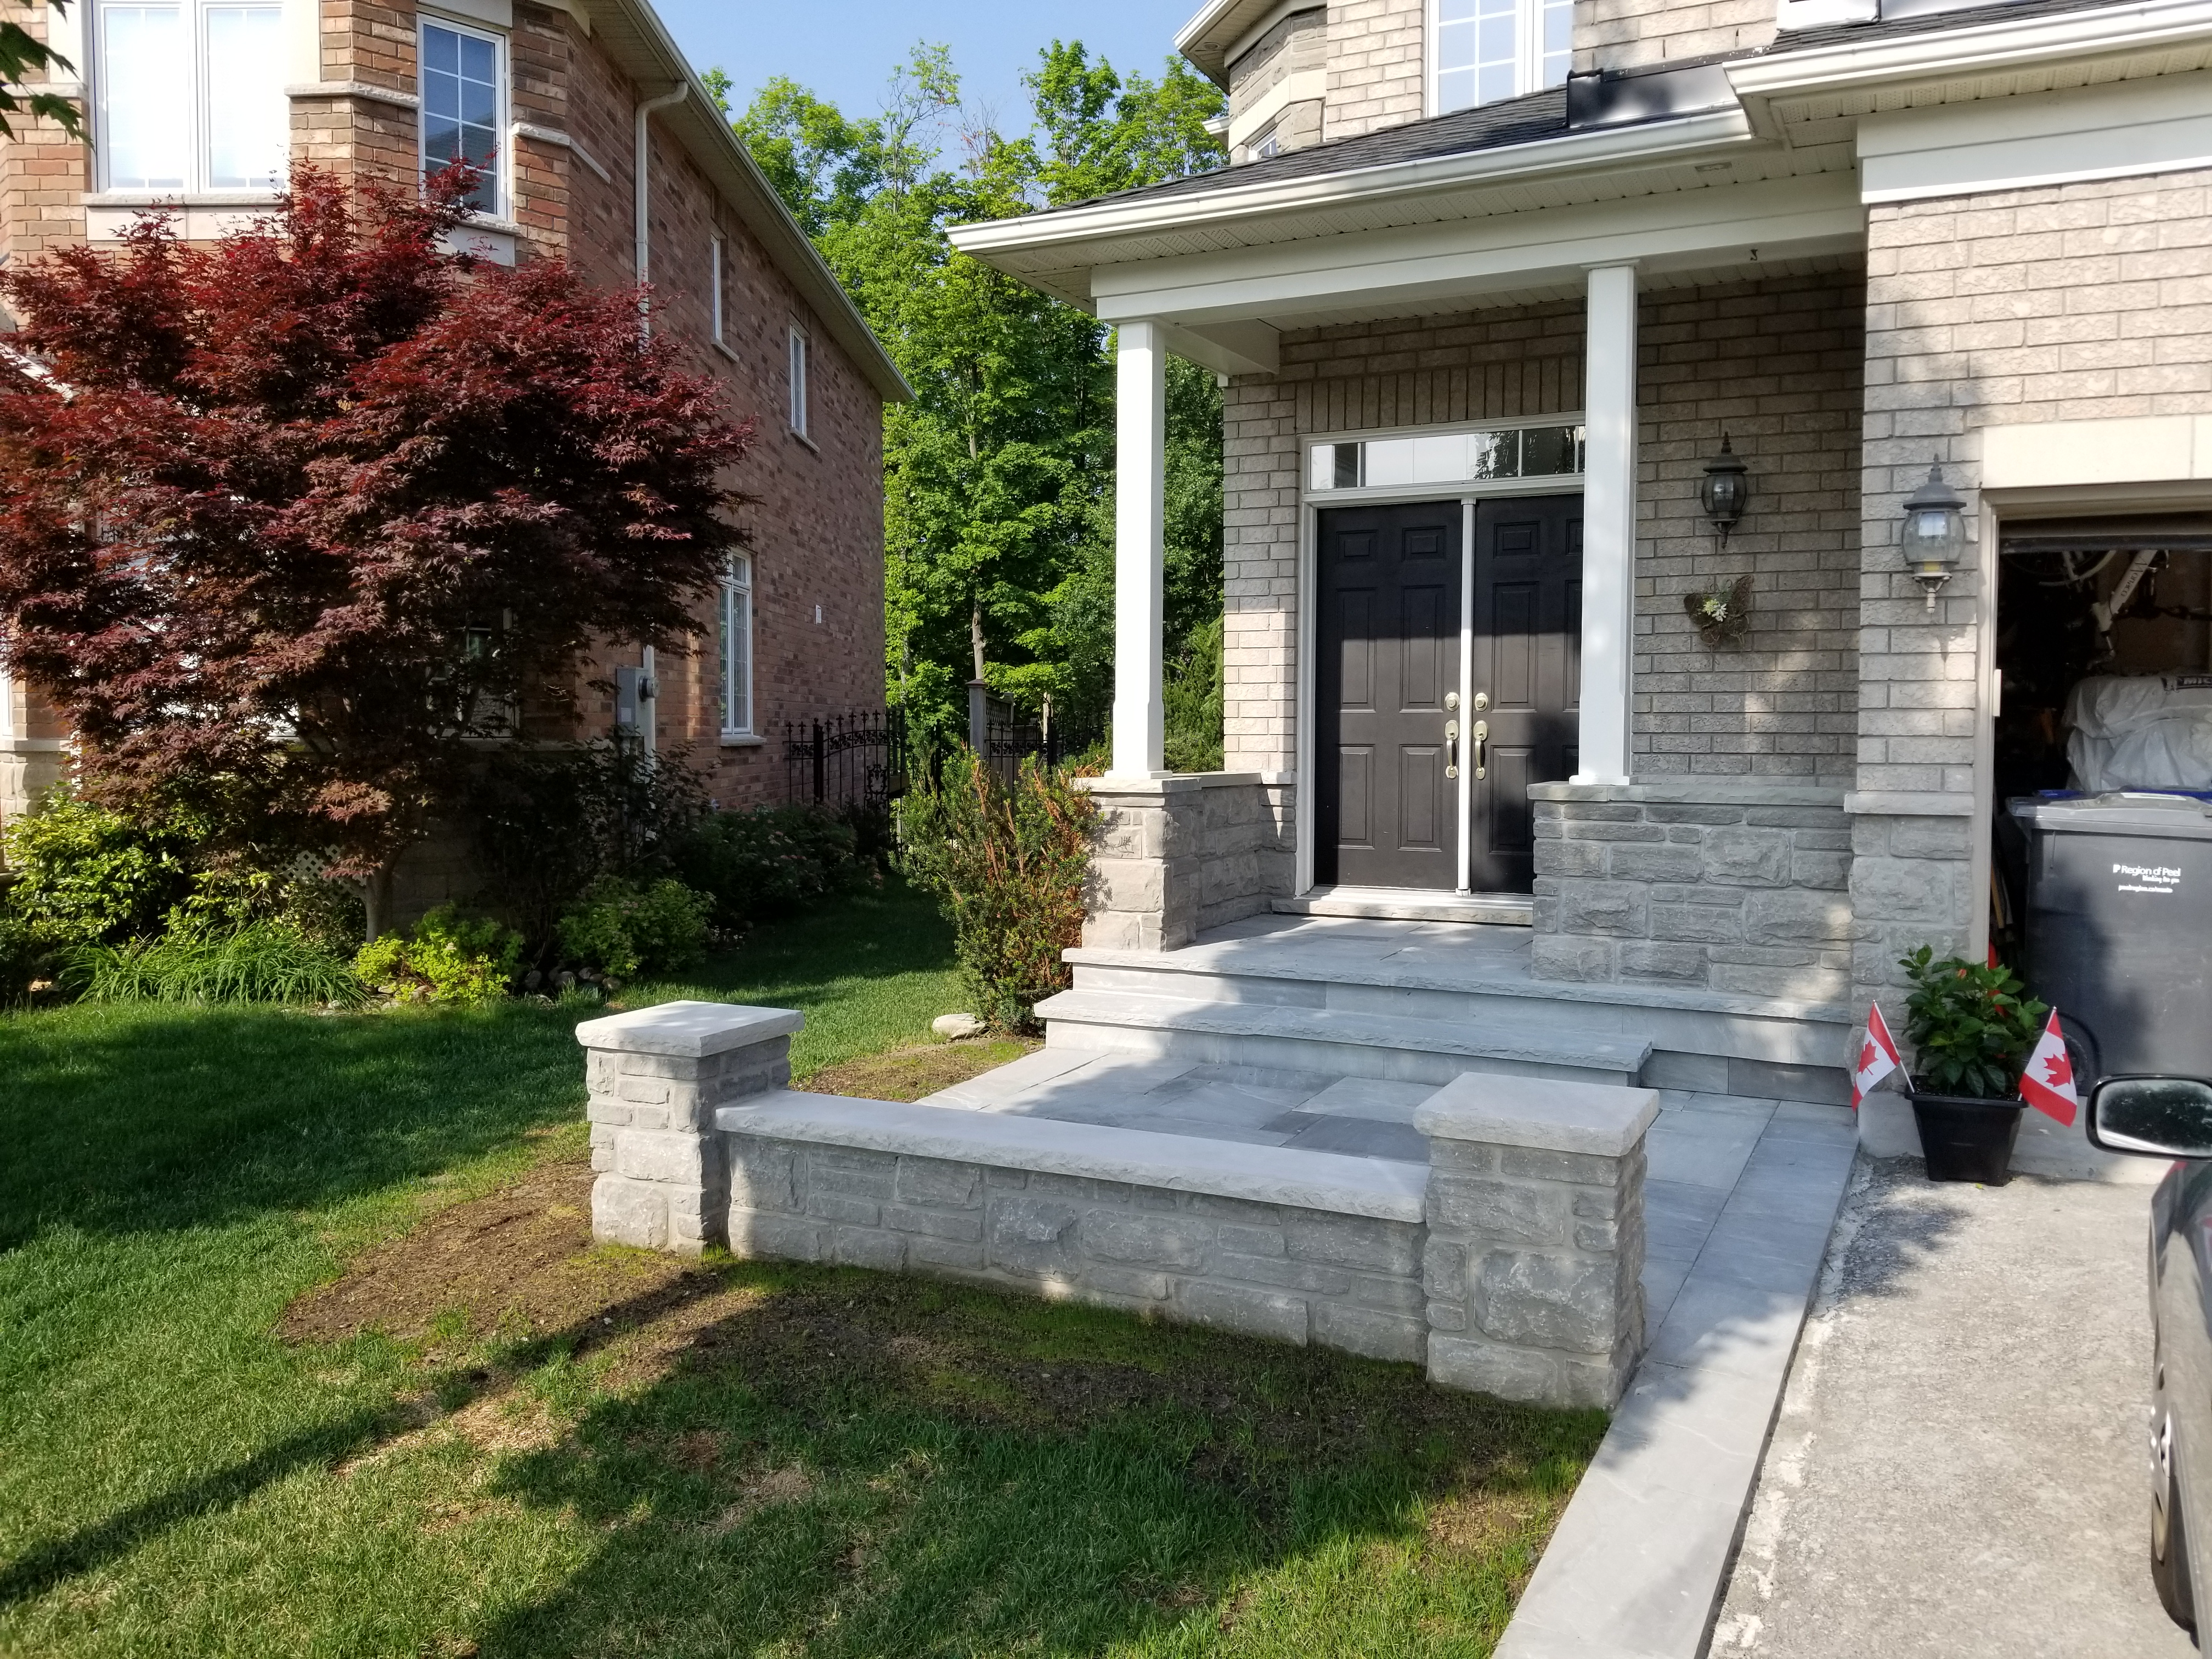 Stone Porch in Brampton